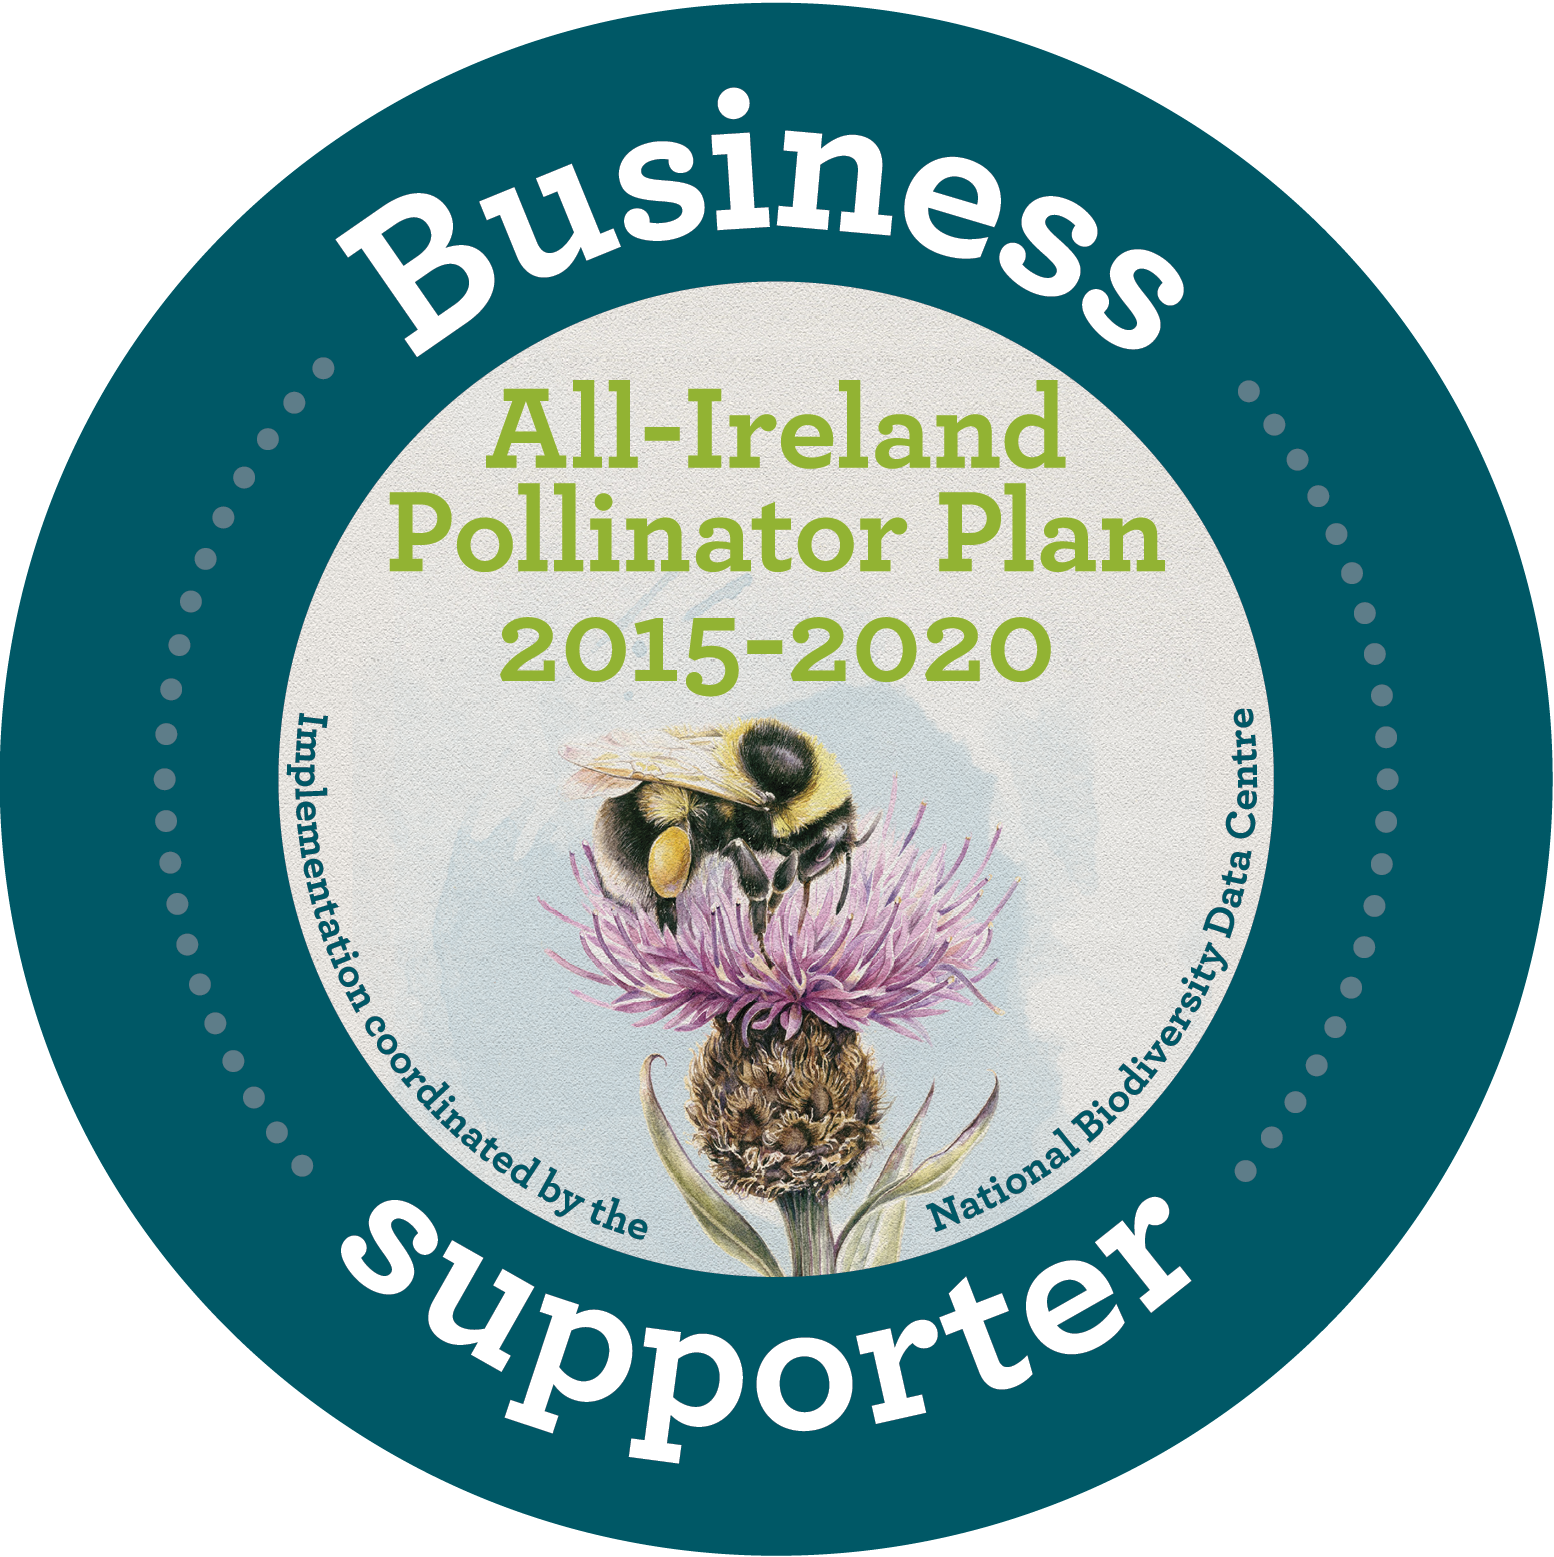 We are supporters of the All-Ireland Pollinator Plan to address pollinator decline and protect pollination services by implementing a number of positive initiatives to aid pollinators around our business.